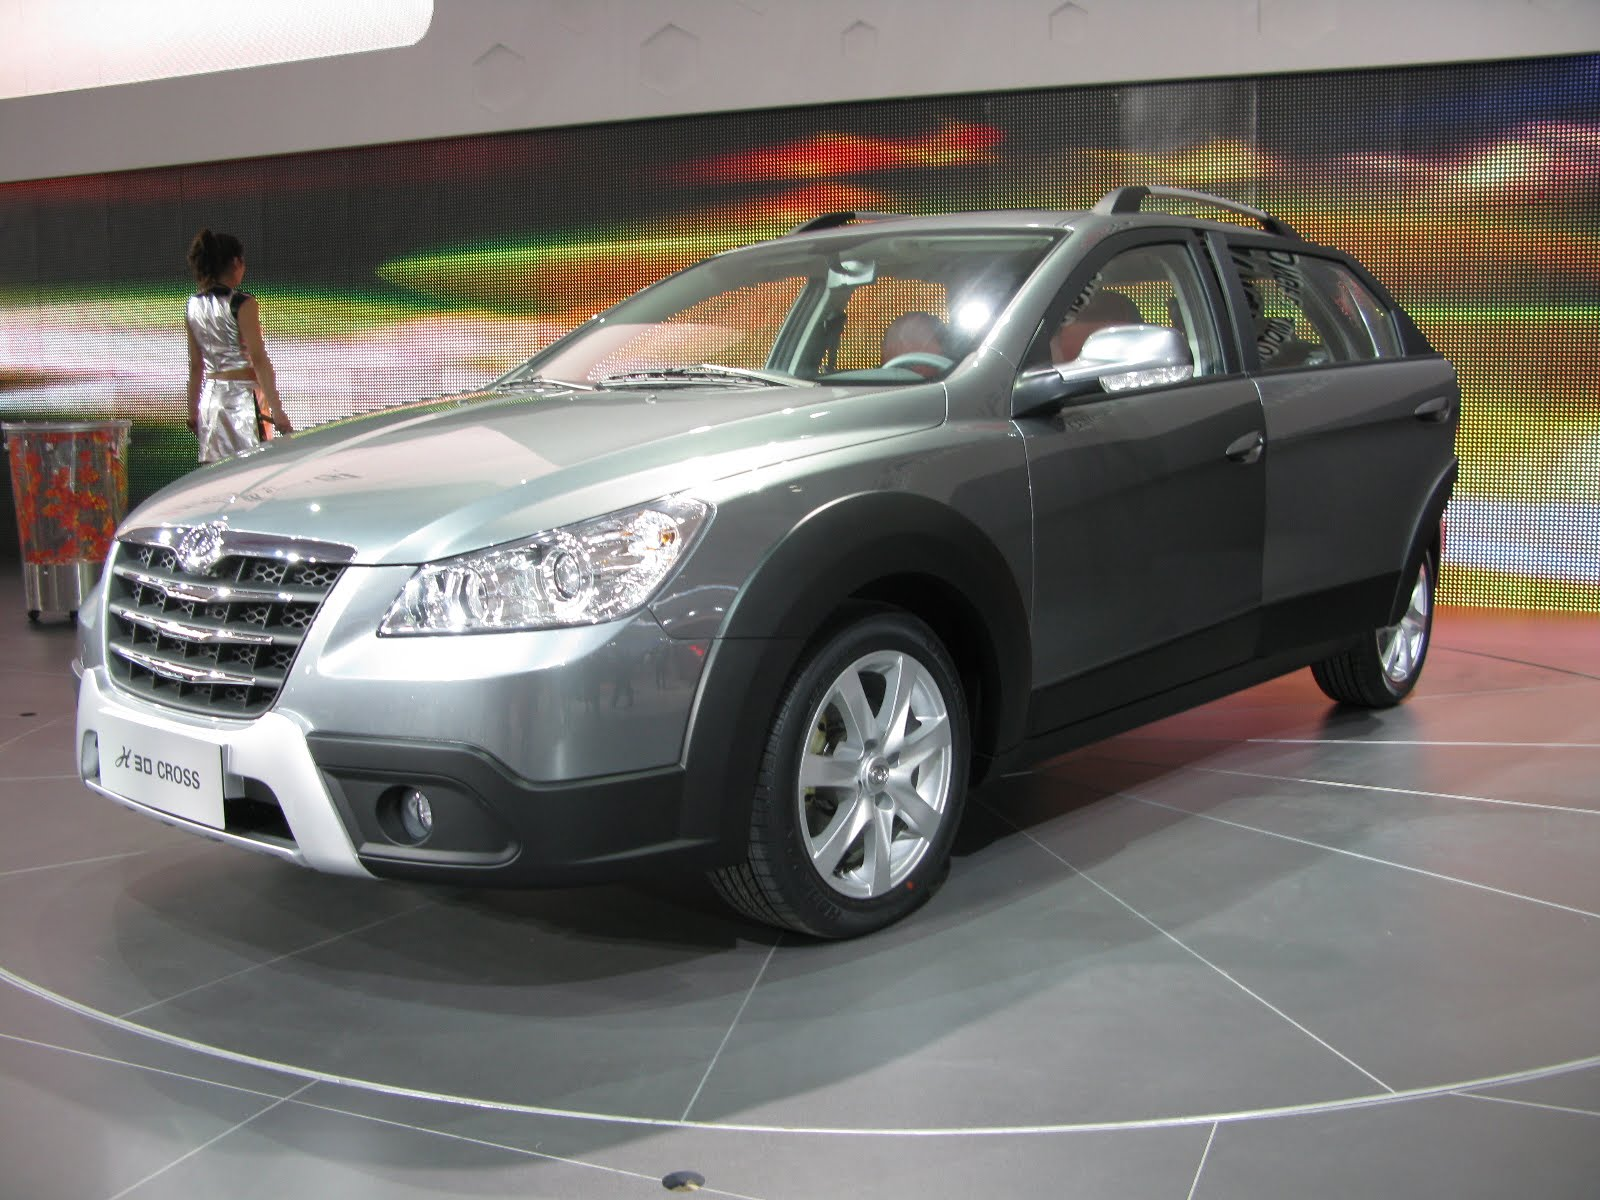 DongFeng H30 1.6 2013 photo - 6